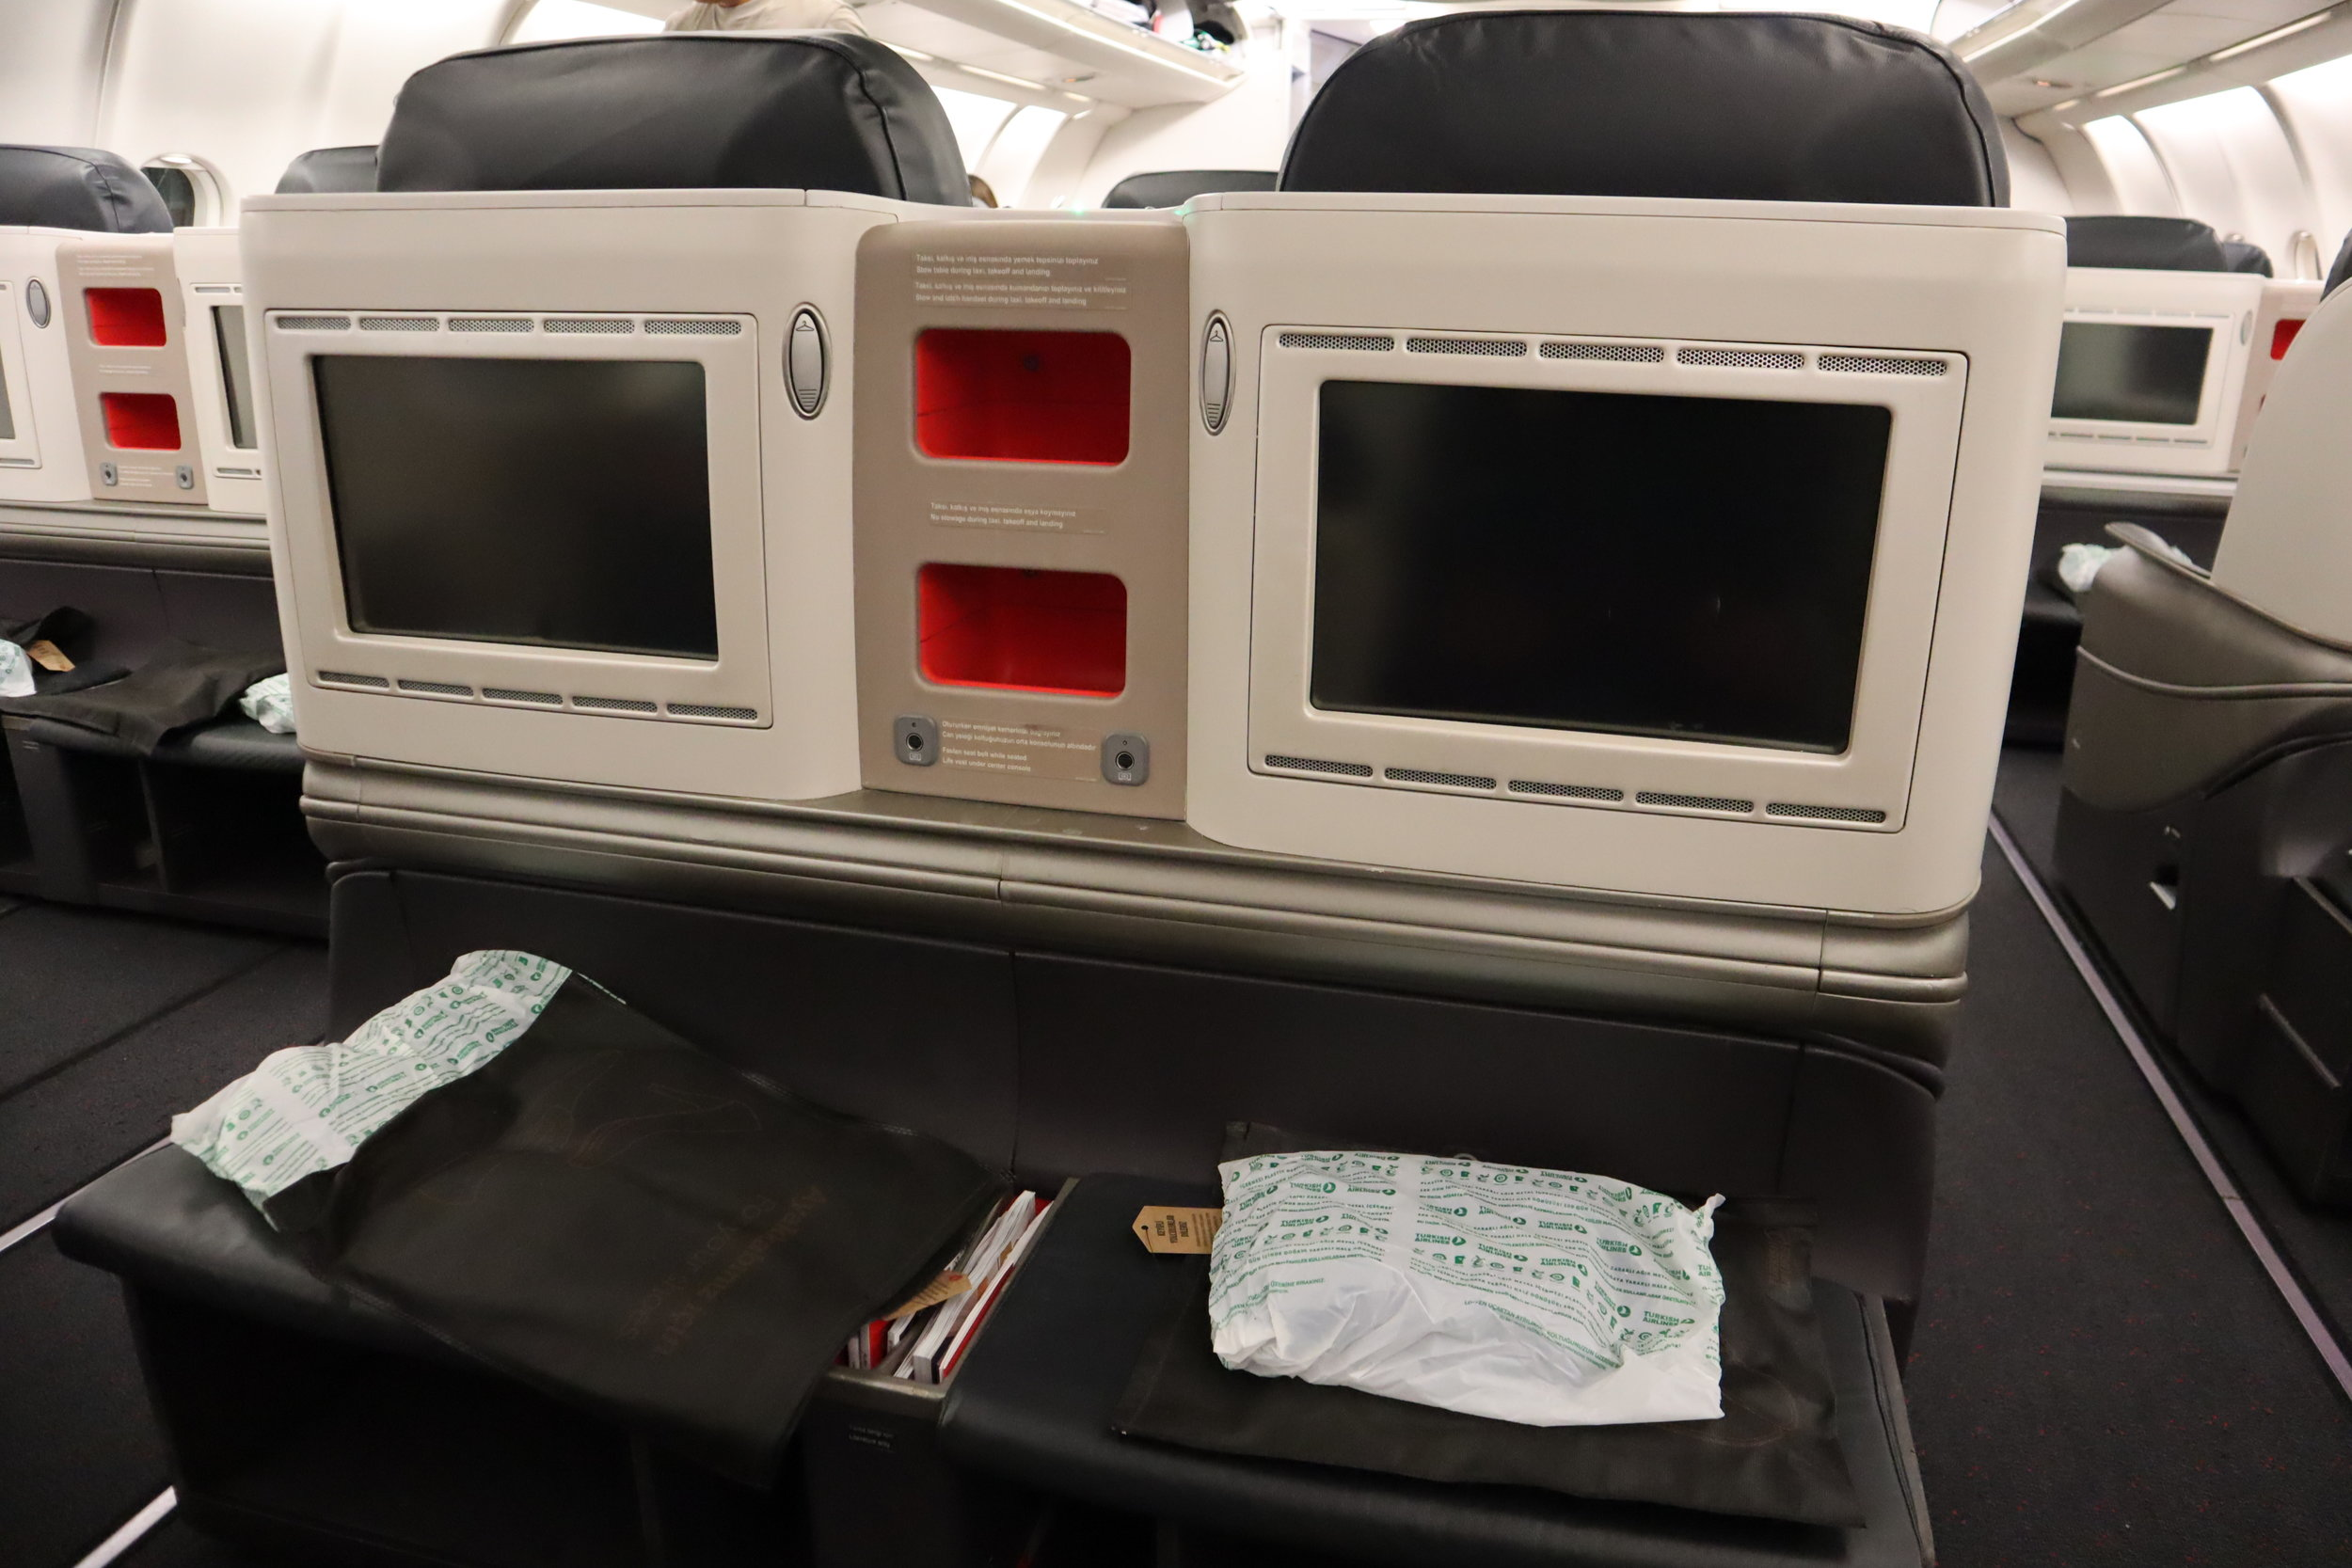 Turkish Airlines A330 business class – Seat pitch